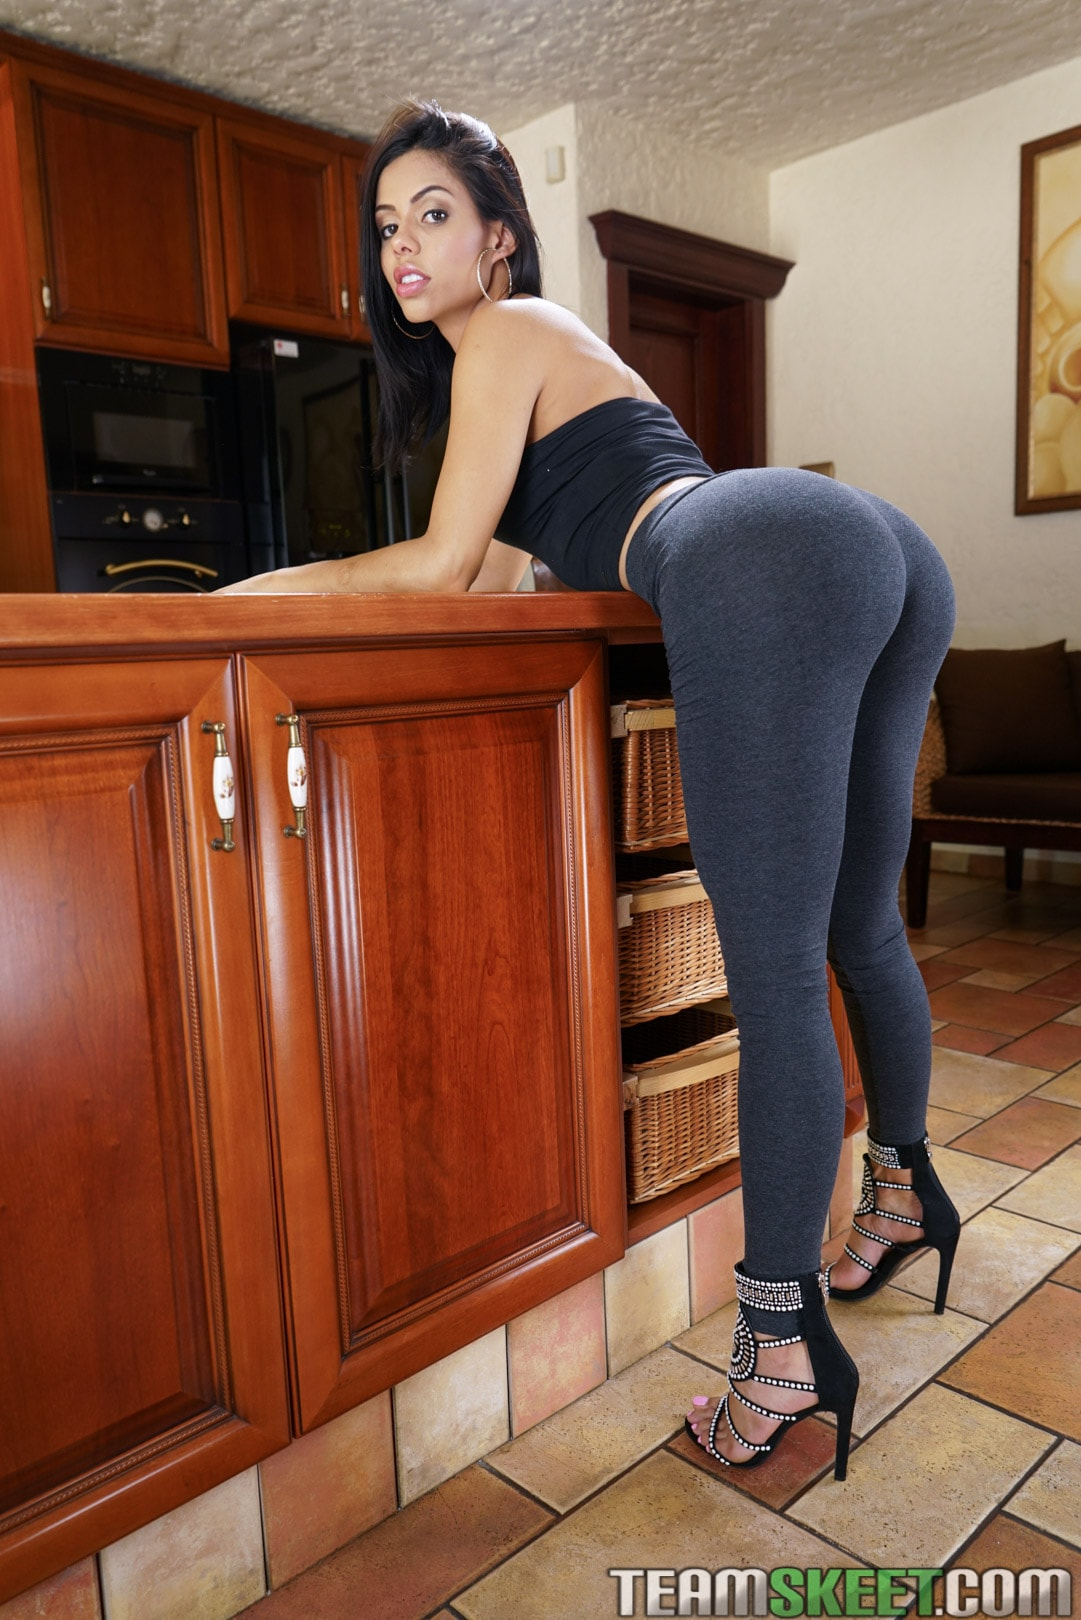 Team Skeet 'Sexy Latina Shows Us Her Positions' starring Canela Skin (Photo 1)